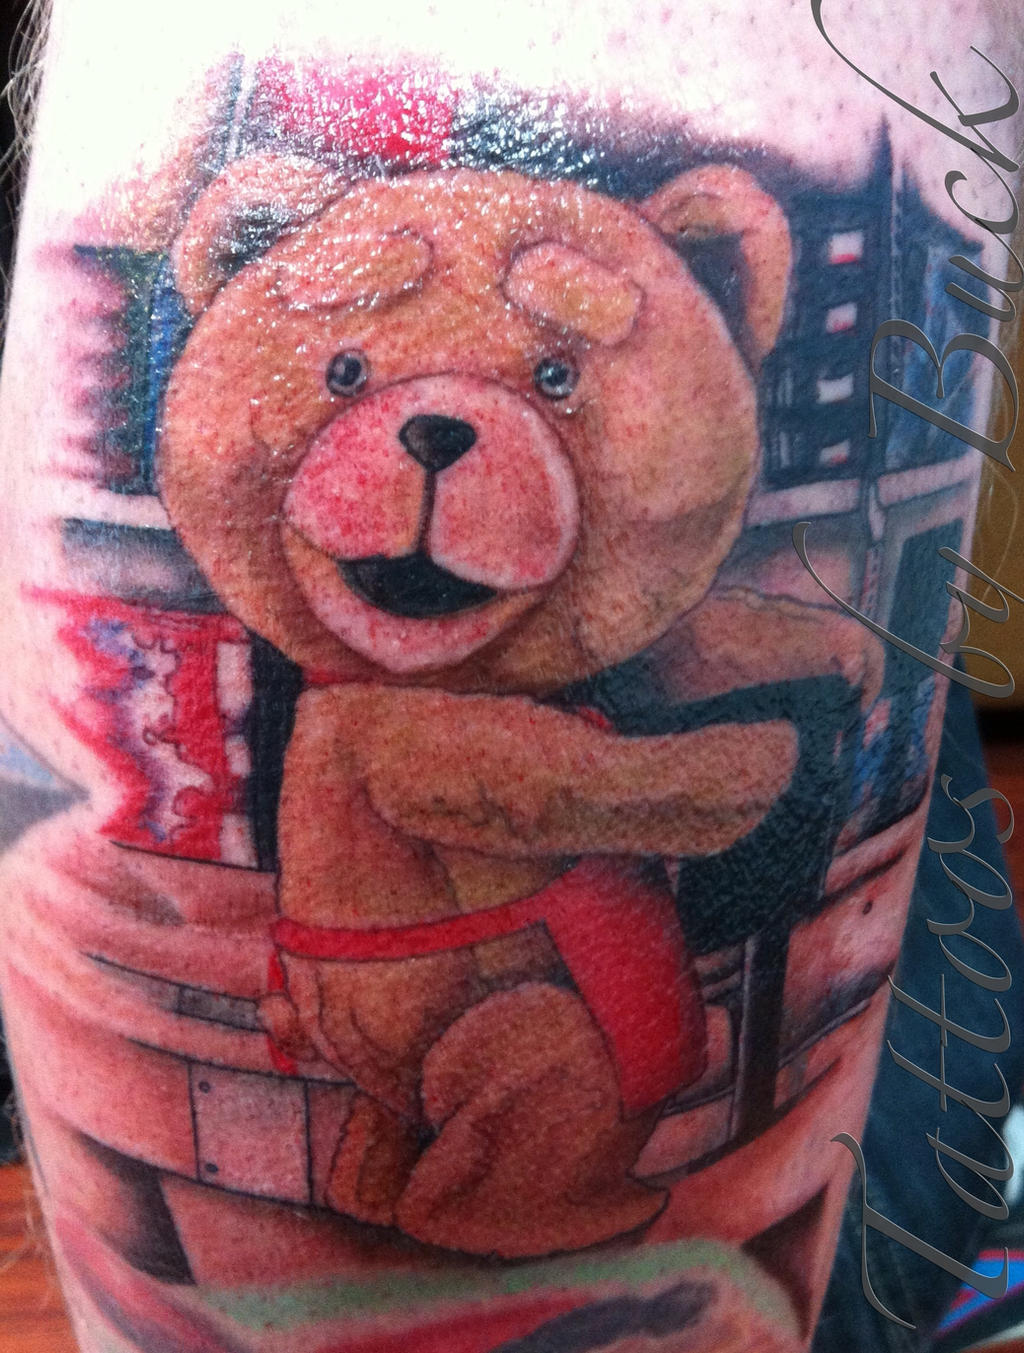 Art Body Modification Tattoos An Awesome Ted Tattoo I Mad Recently